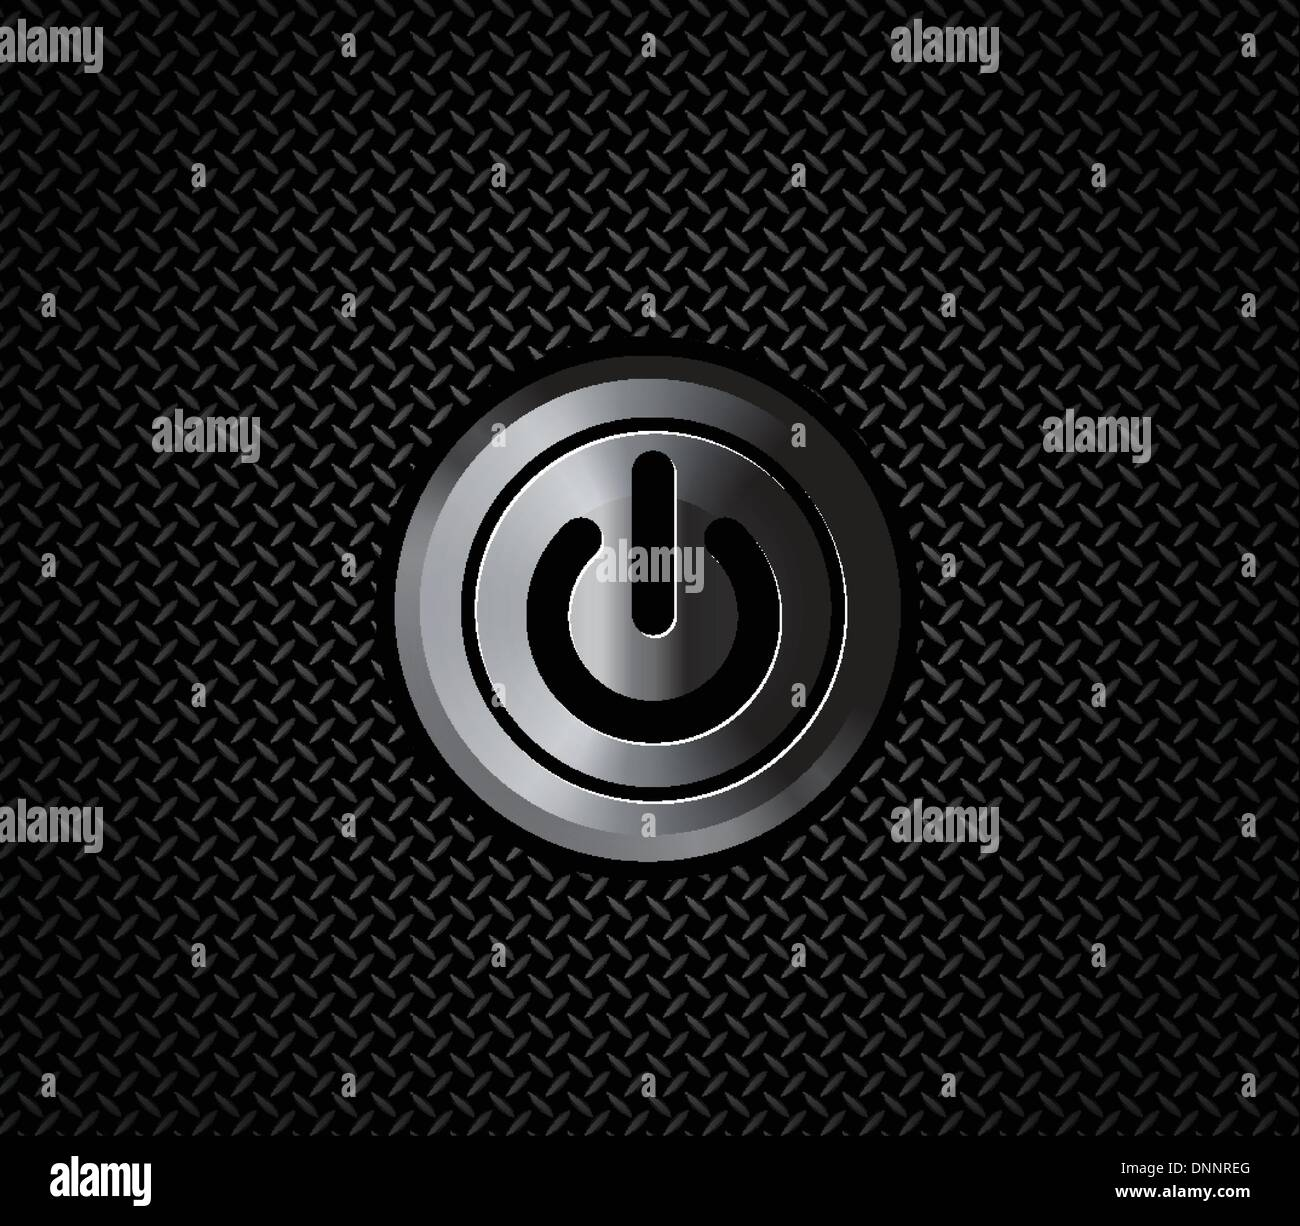 Le bouton power sur mettal motif métal noir Photo Stock